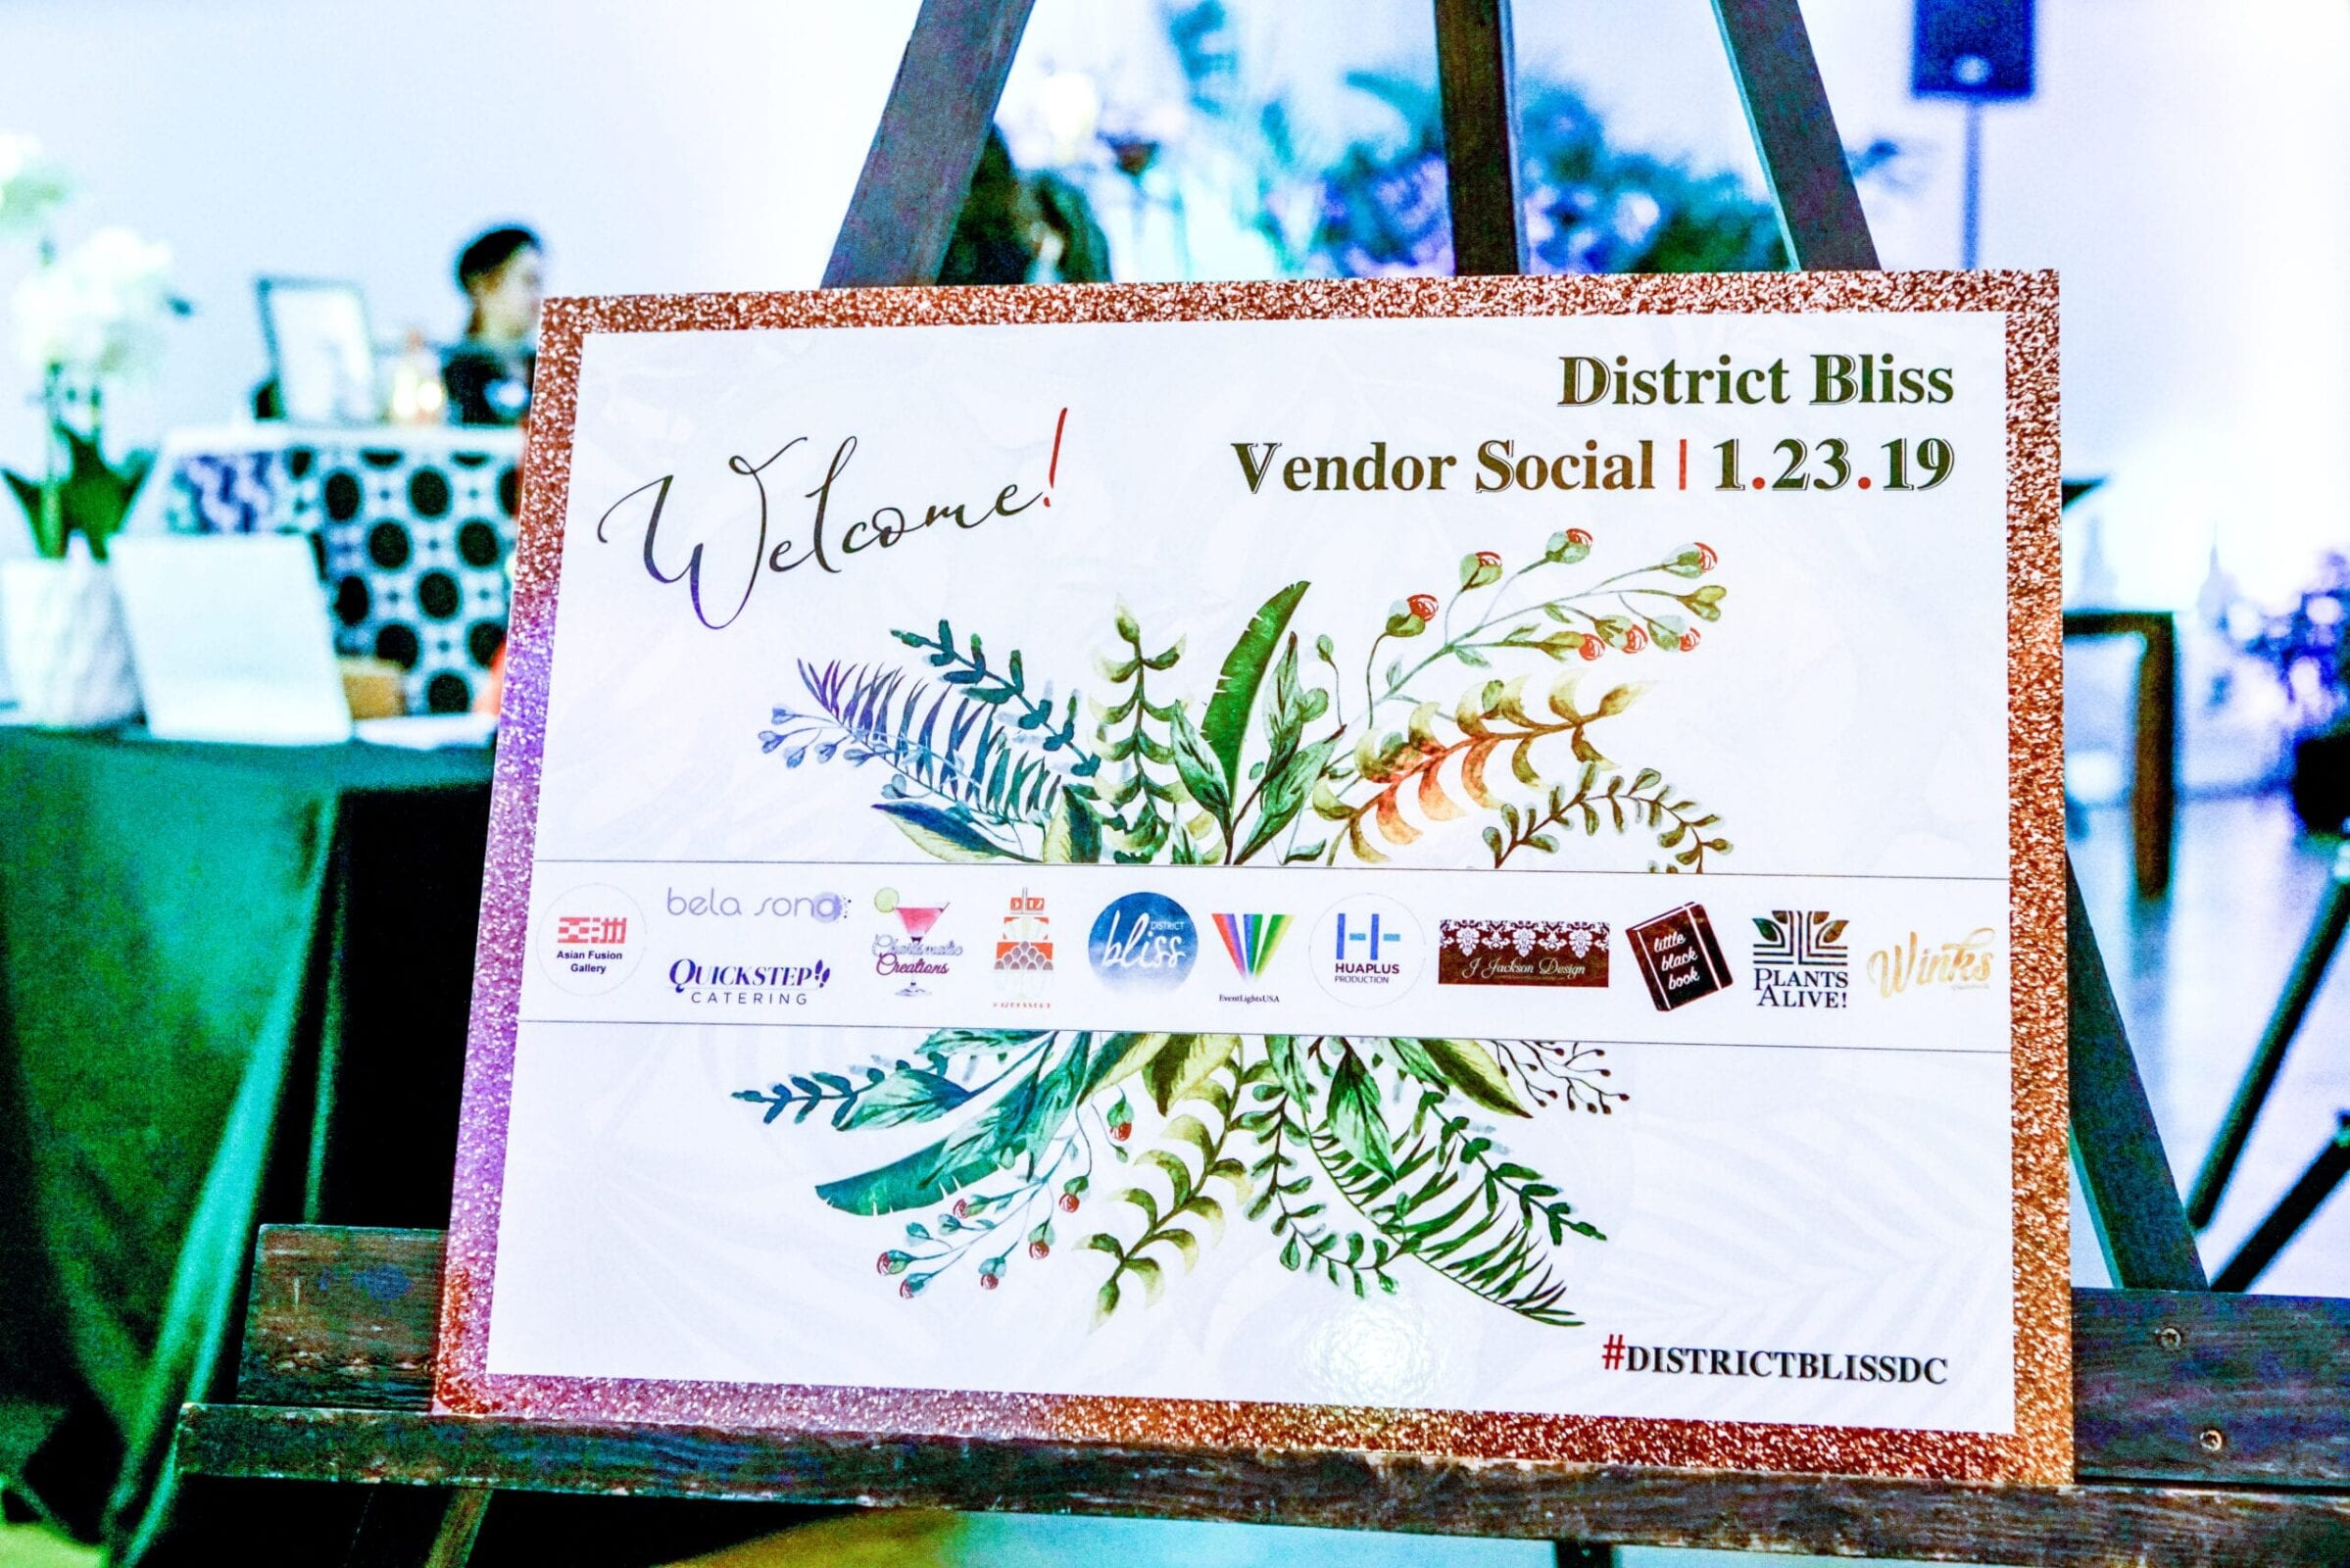 Light-hearted, welcoming networking events hosted by District Bliss